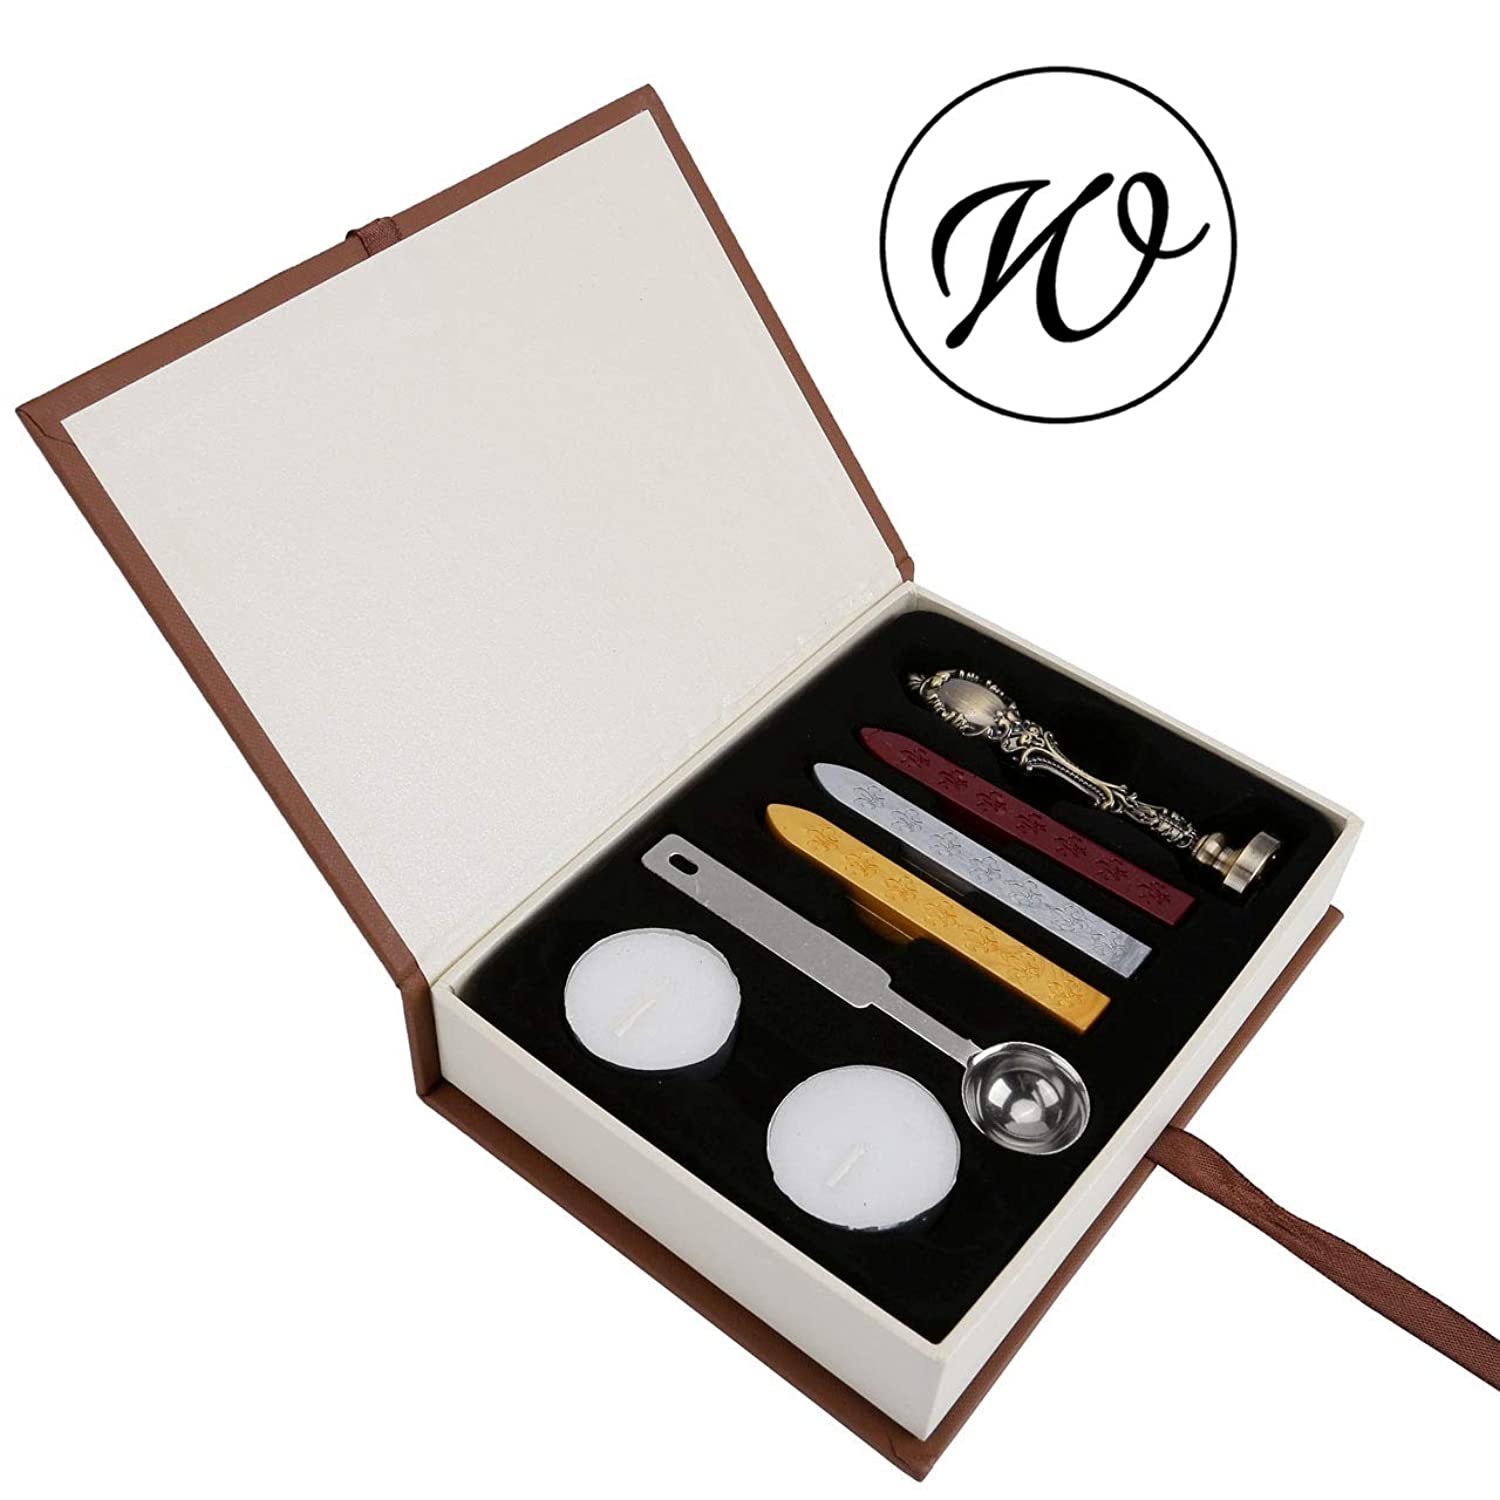 W Wax Seal Stamp Set, Yoption Classic Vintage Style Brass Color Antique Alphabet Initial Letter W Sealing Wax Stamp Set, Retro Seal Stamps Maker Gift Box Set, Ideal Gift